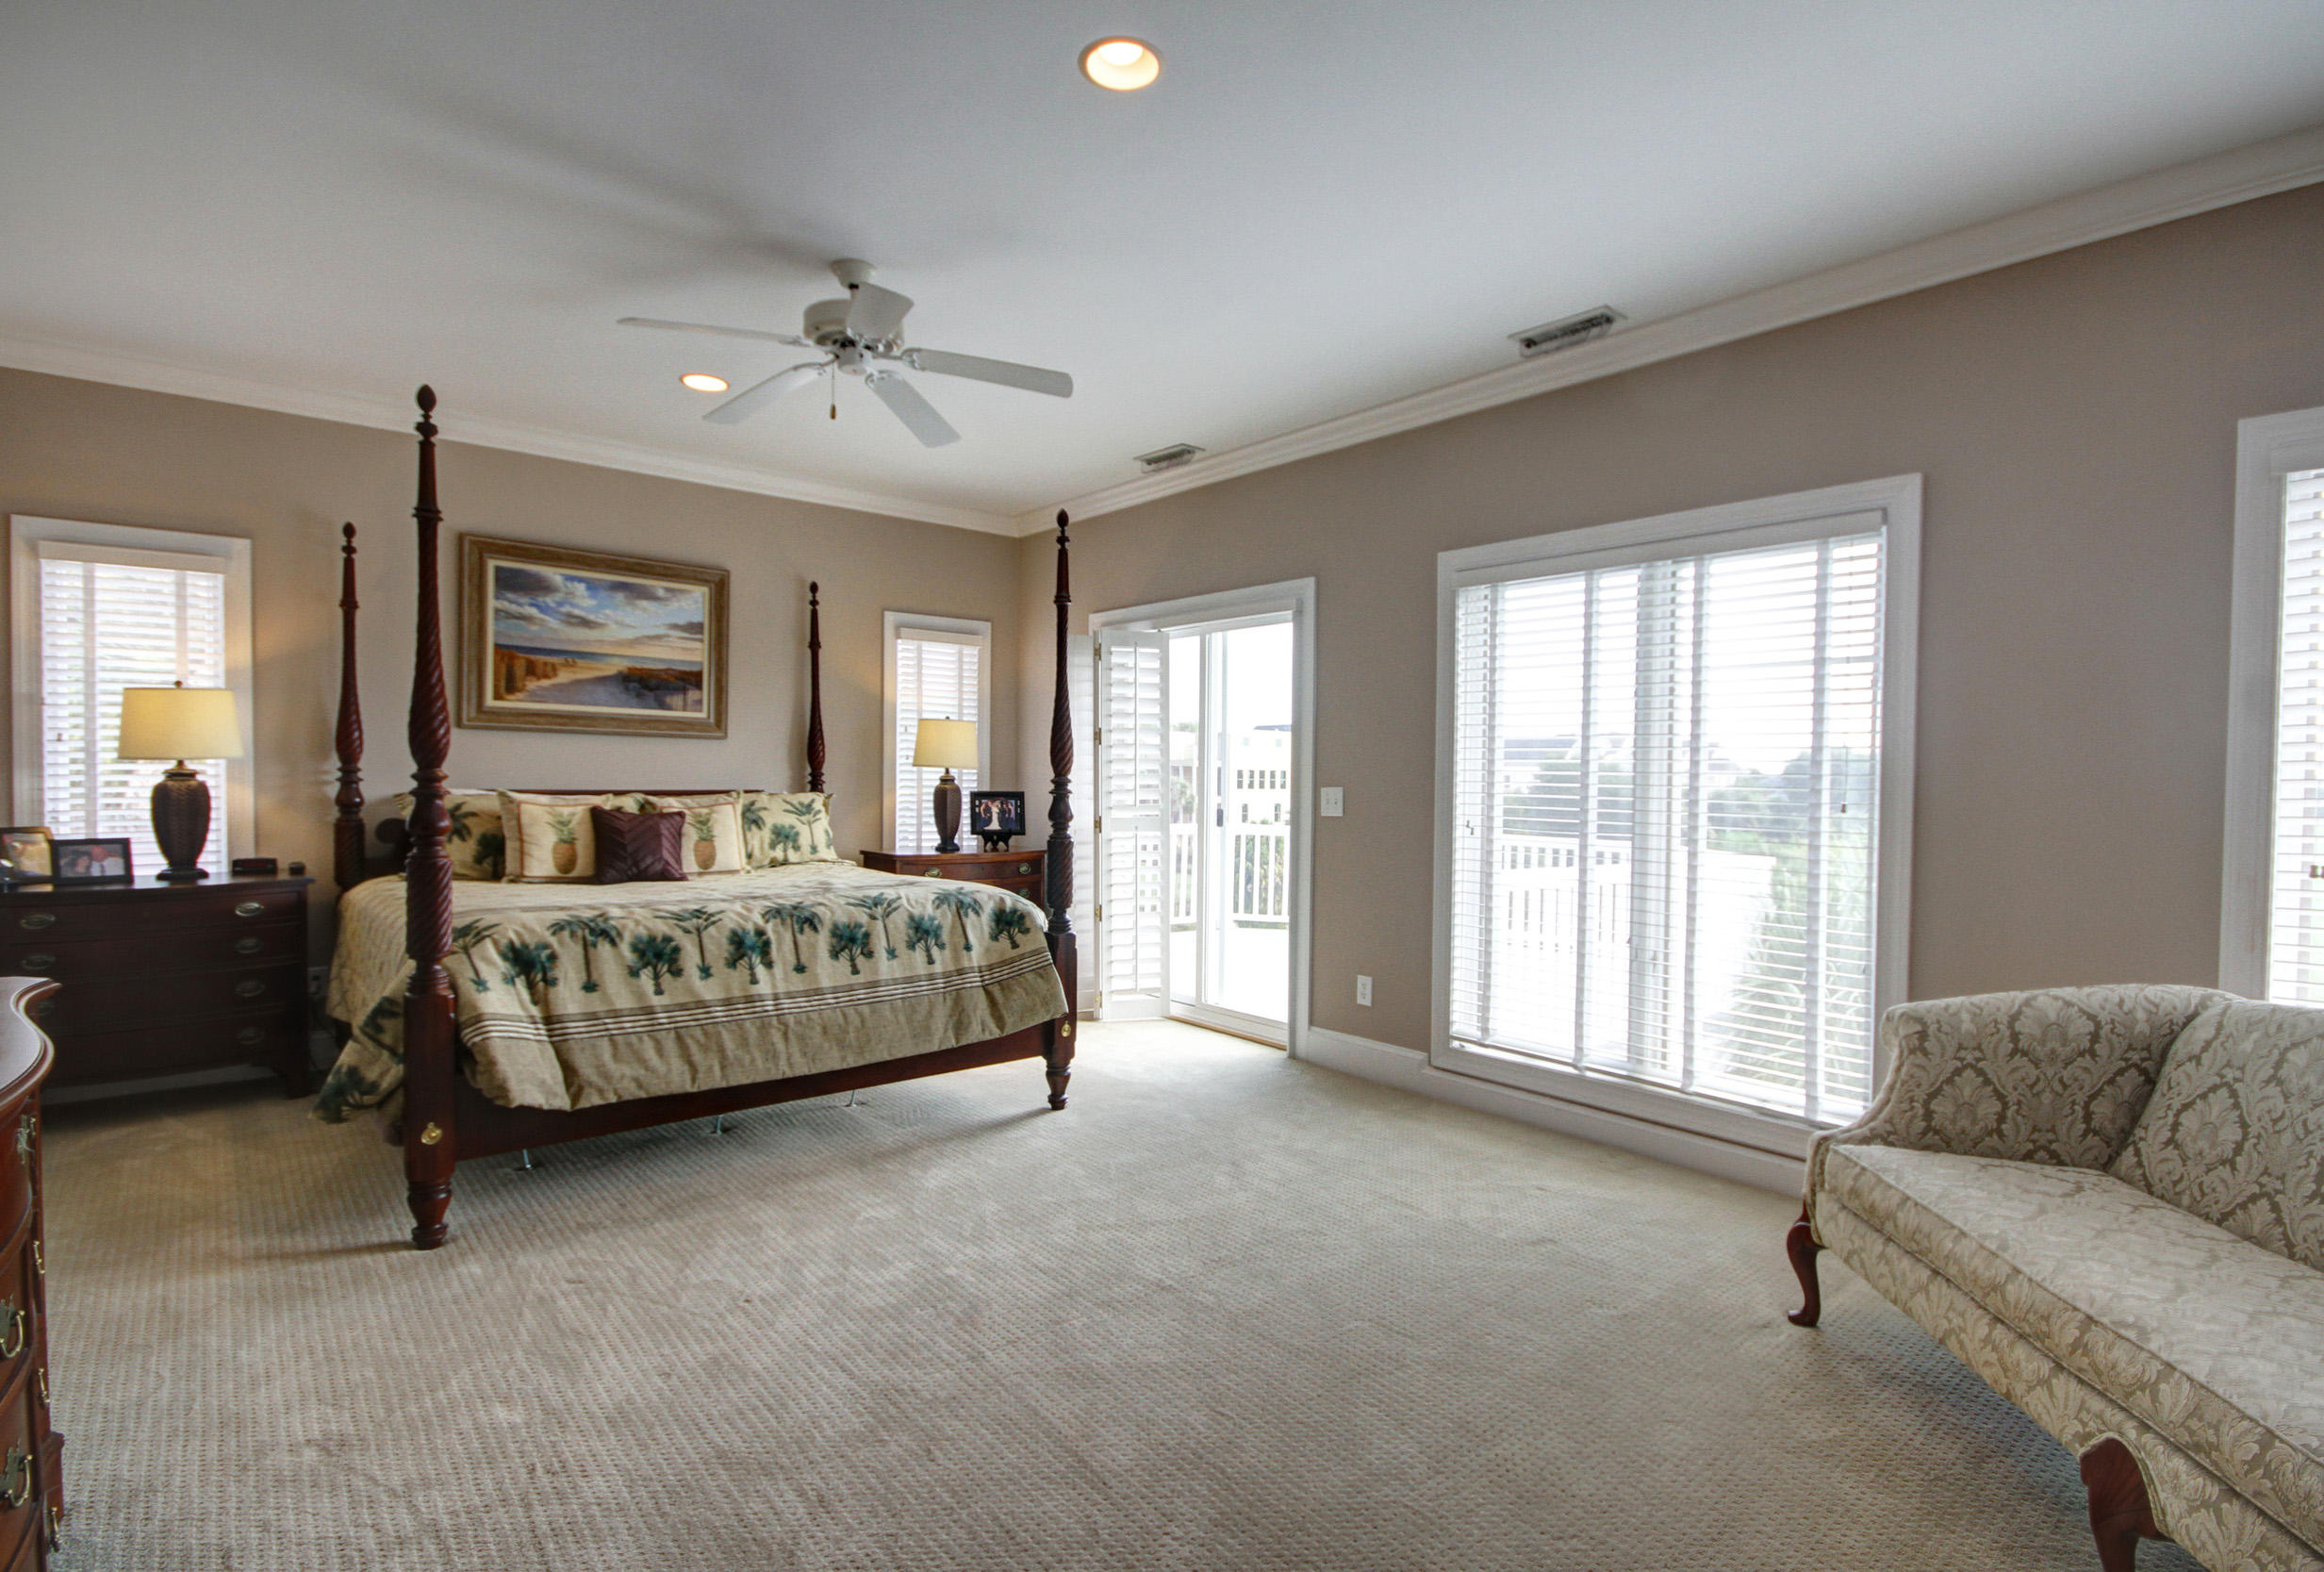 Wild Dunes Homes For Sale - 2 Morgan Pl, Isle of Palms, SC - 22